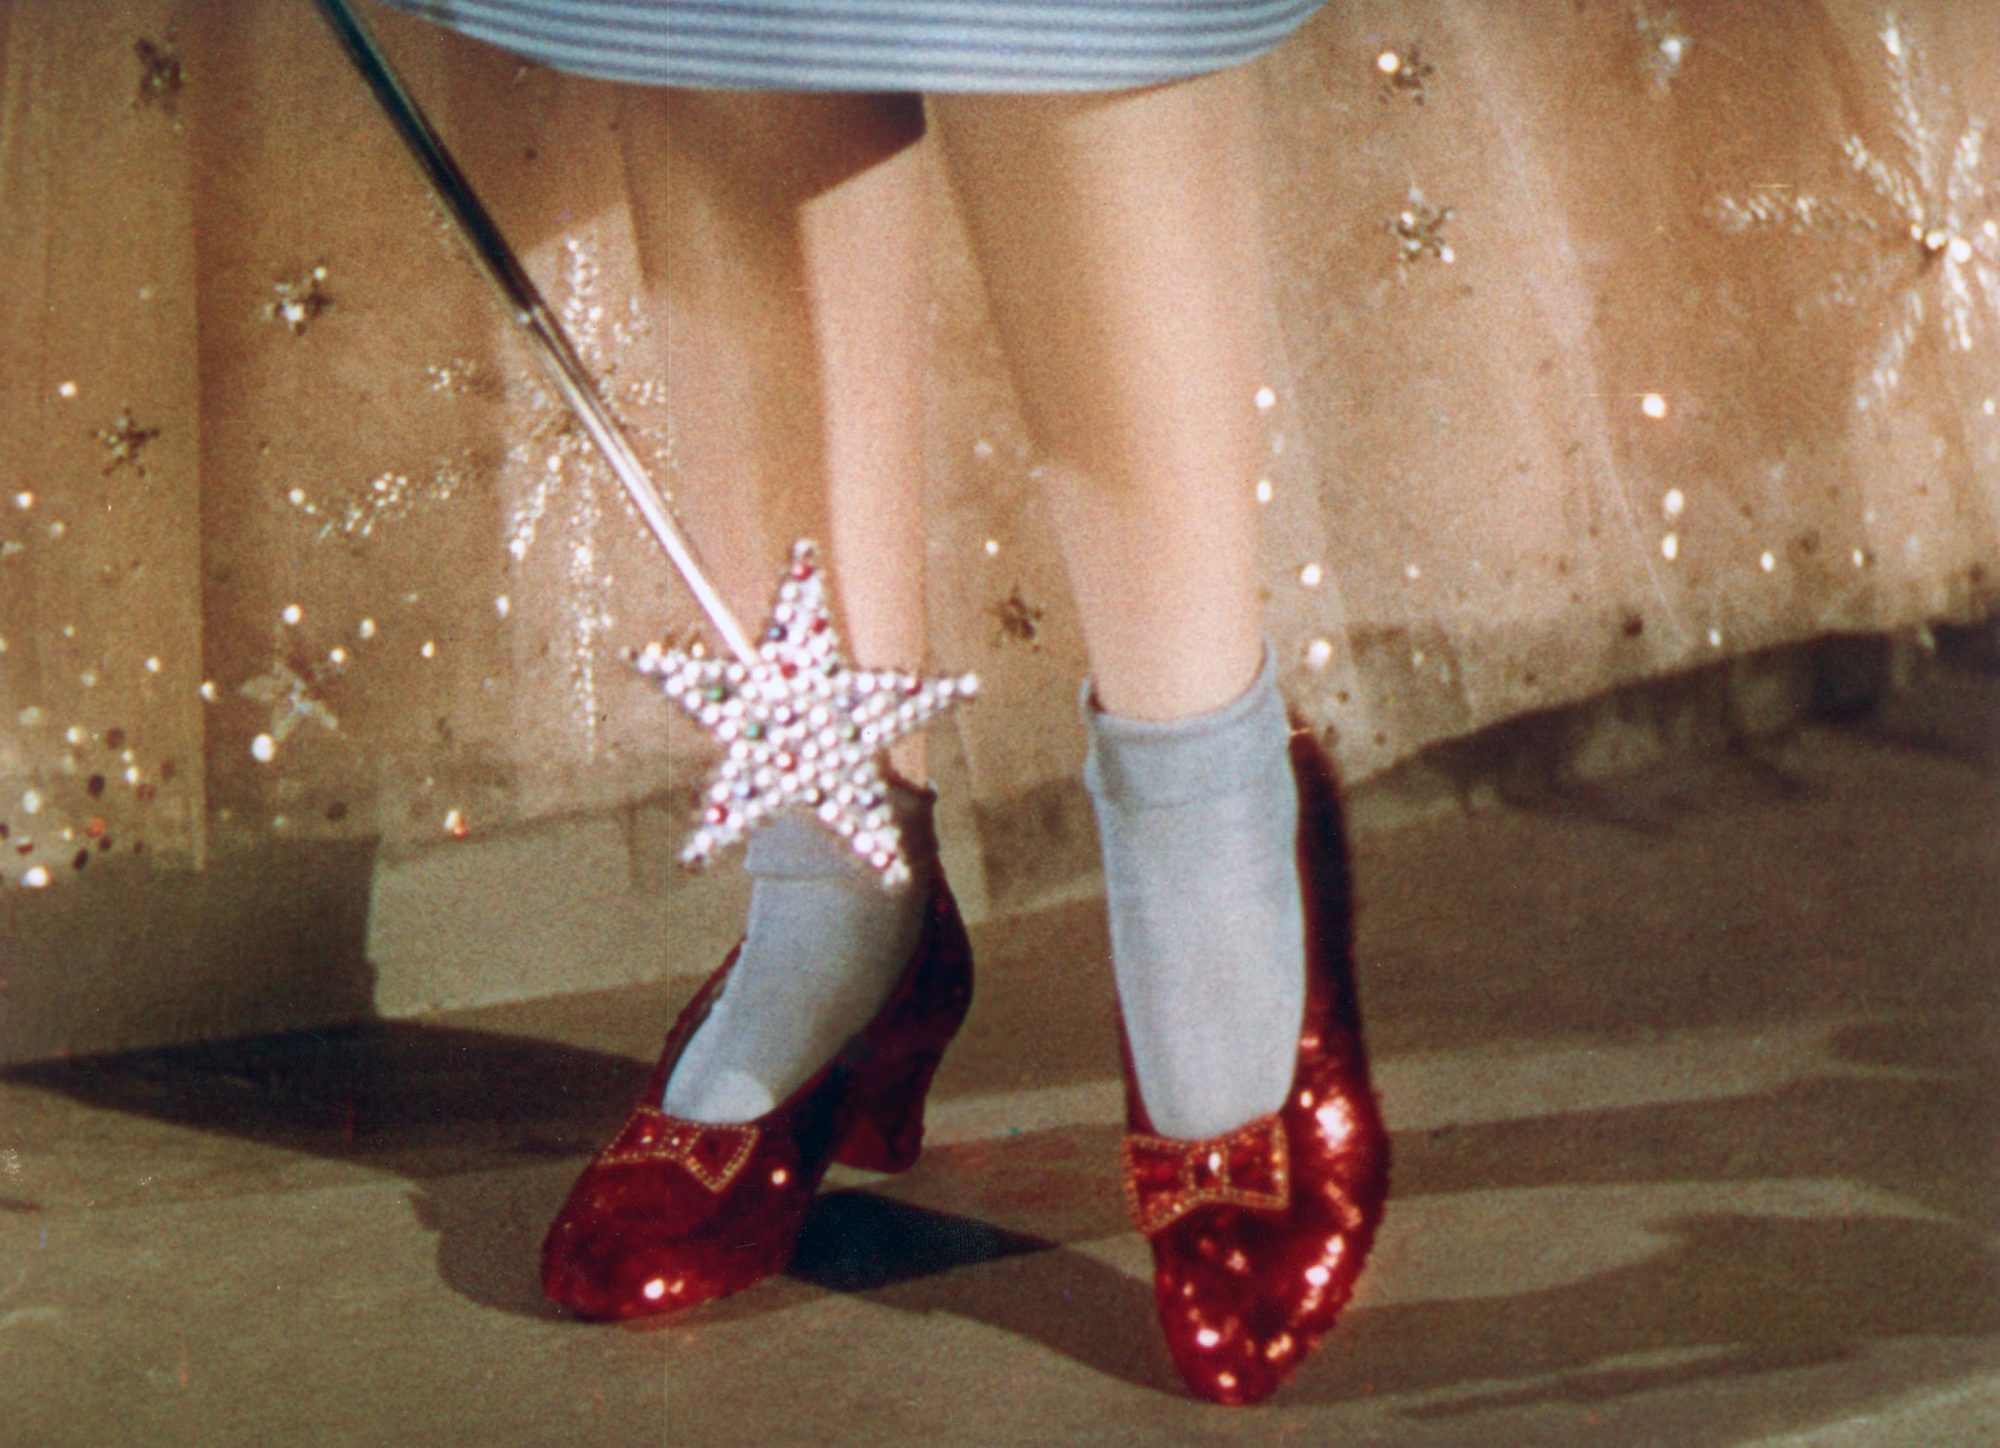 The Wizard of Oz's Ruby Slippers Became Iconic 80 Years Ago — And for Years, One Pair Was Lost